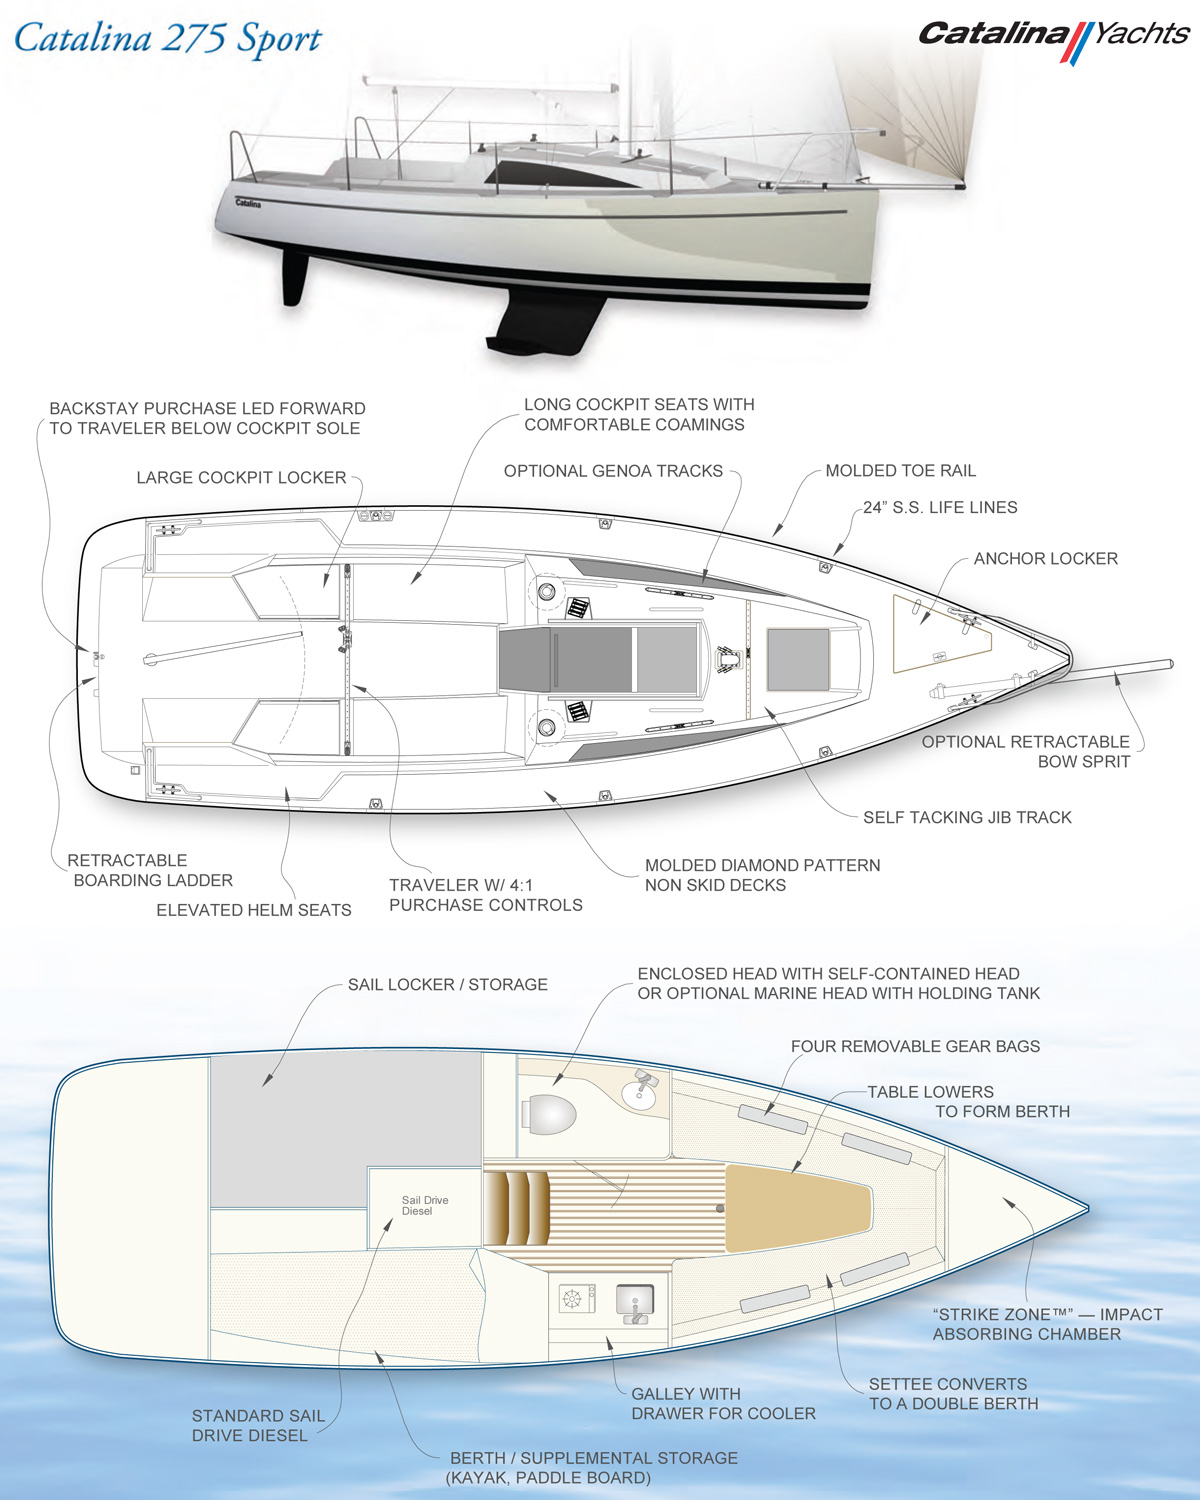 Catalina 275 Sport Yachts 22 Wiring Diagram Layout